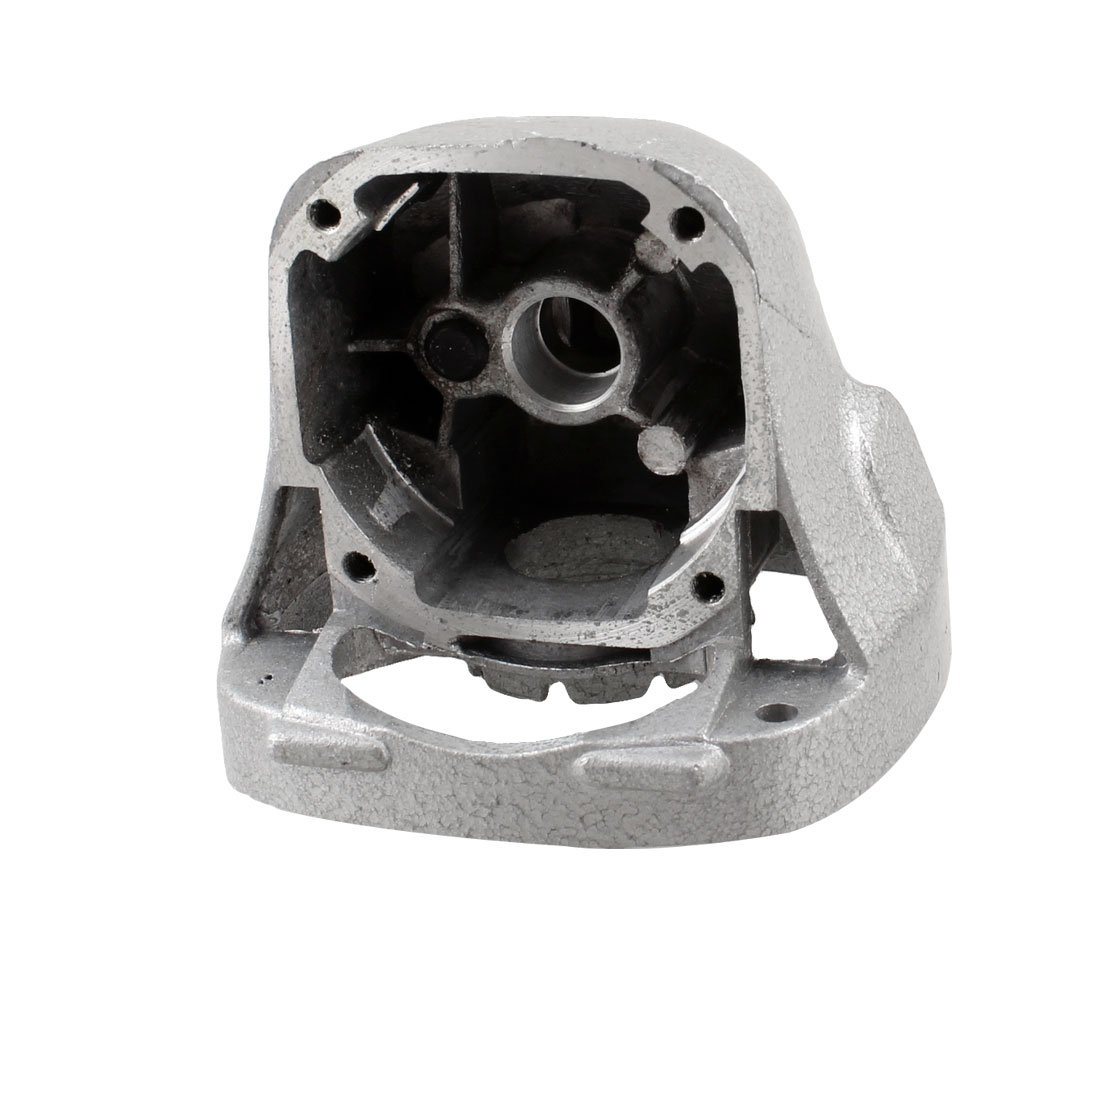 "Gear Cover Housing for Bosch GWS6-100 4"" Angle Grinder"